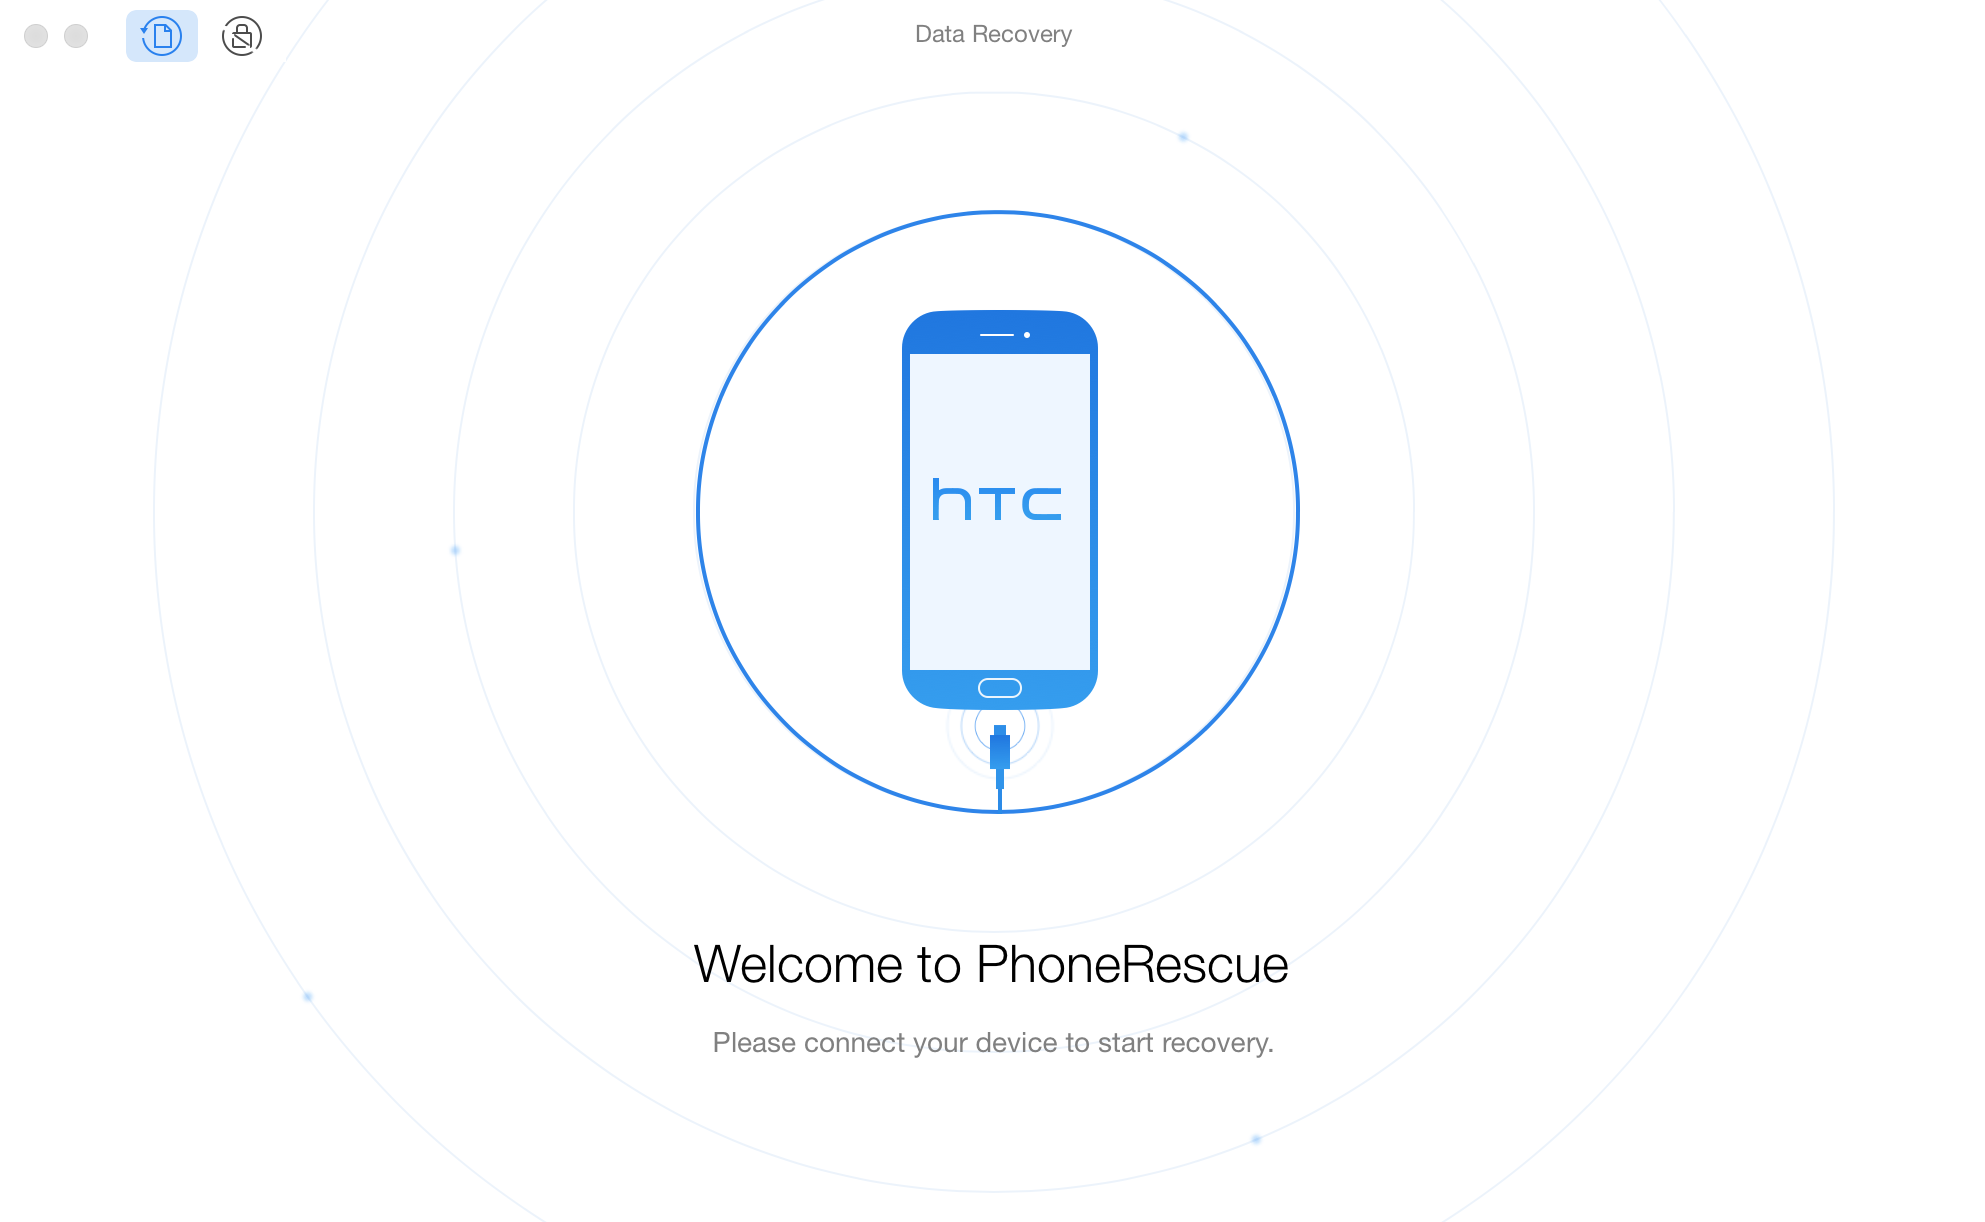 Connecting Your HTC Device